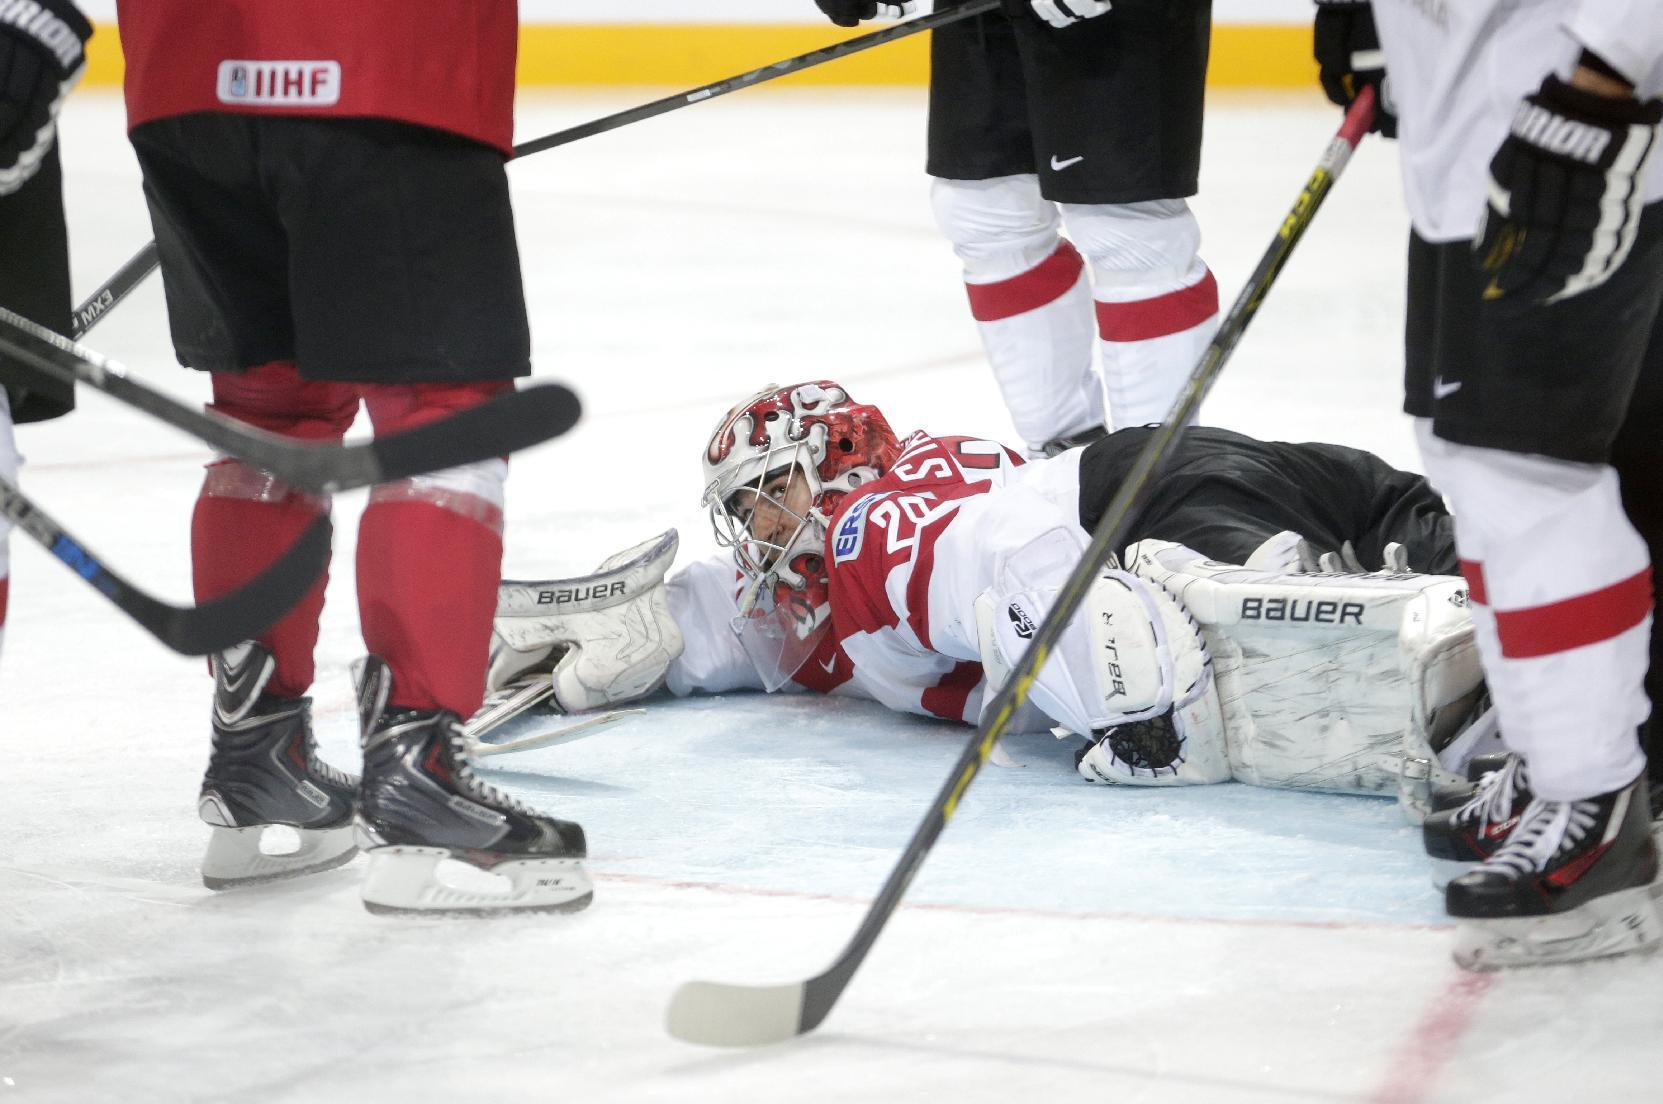 US 2 for 2 at ice hockey worlds, Czechs rebound